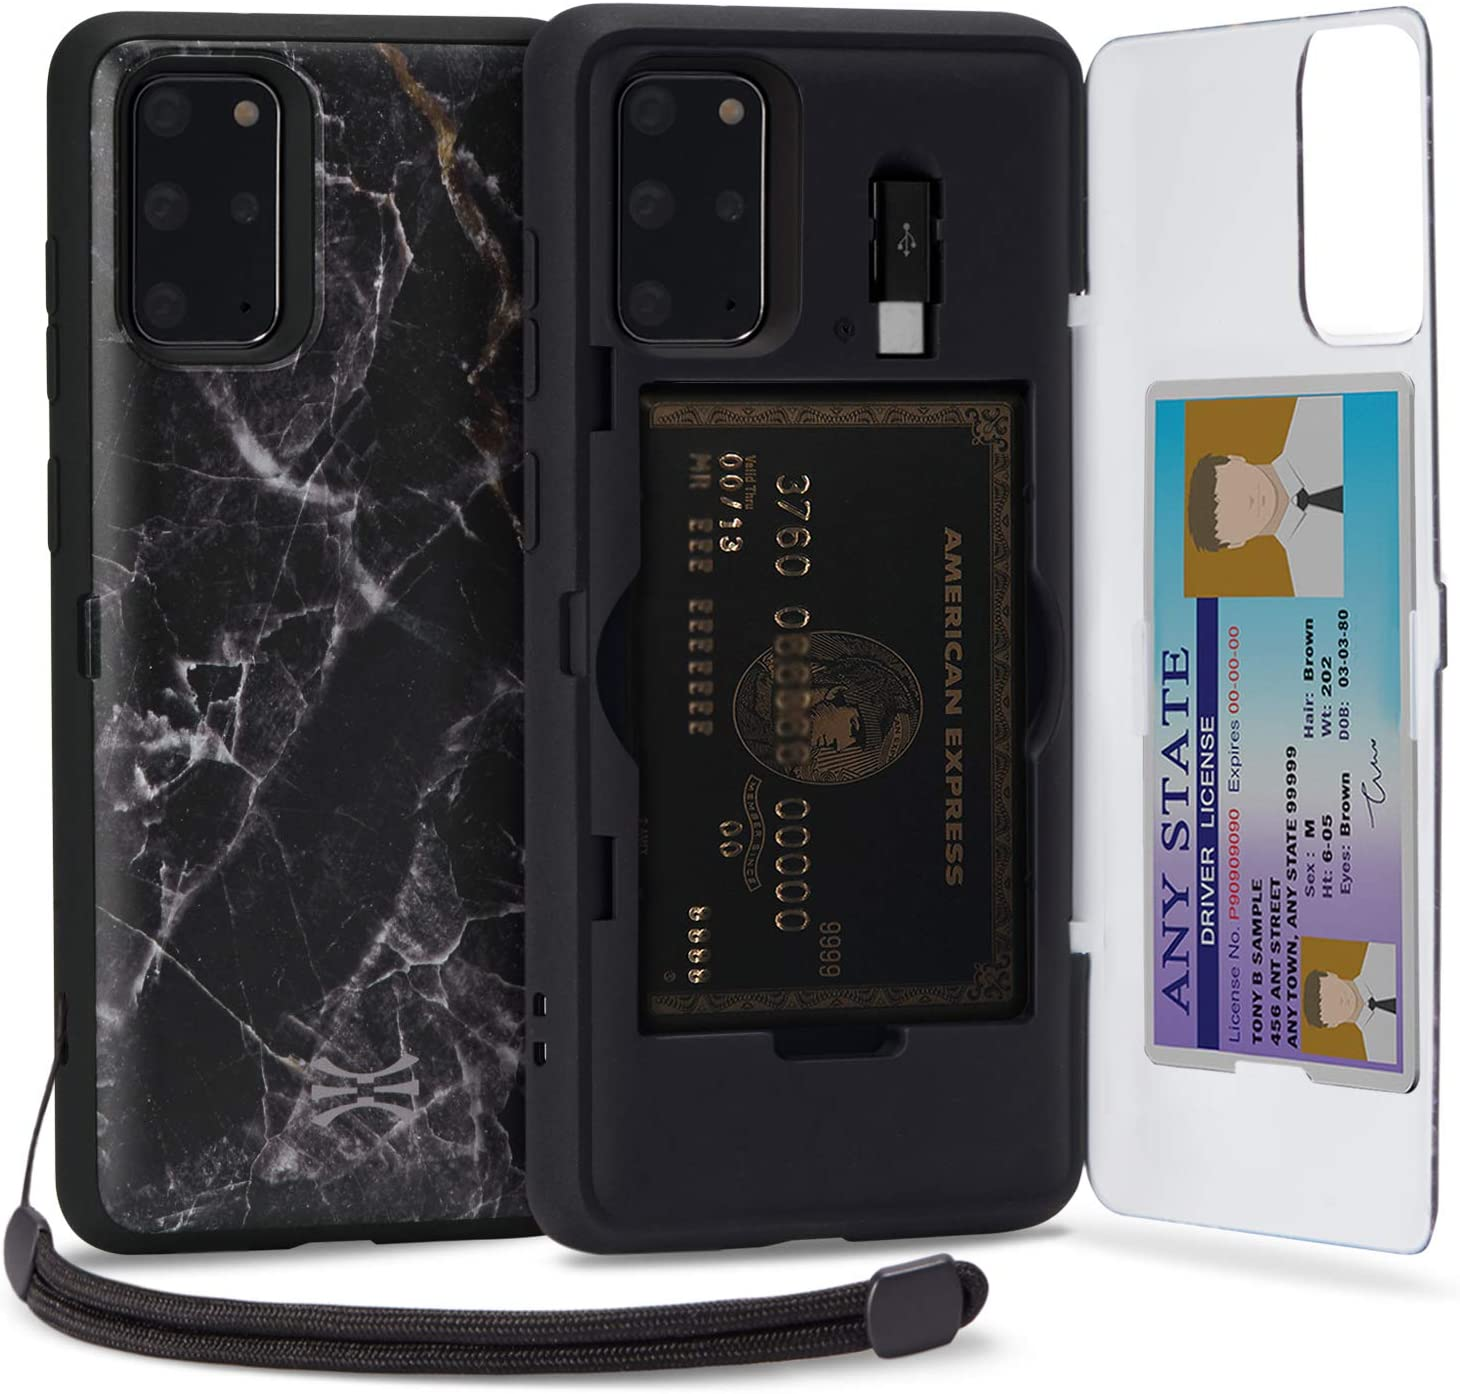 TORU CX PRO Compatible with Samsung Galaxy S20 Plus Wallet Case - Protective Stone Pattern Dual Layer with Hidden Card Holder, ID Slot Hard Cover, Strap, Mirror & USB Adapter - Black Marble